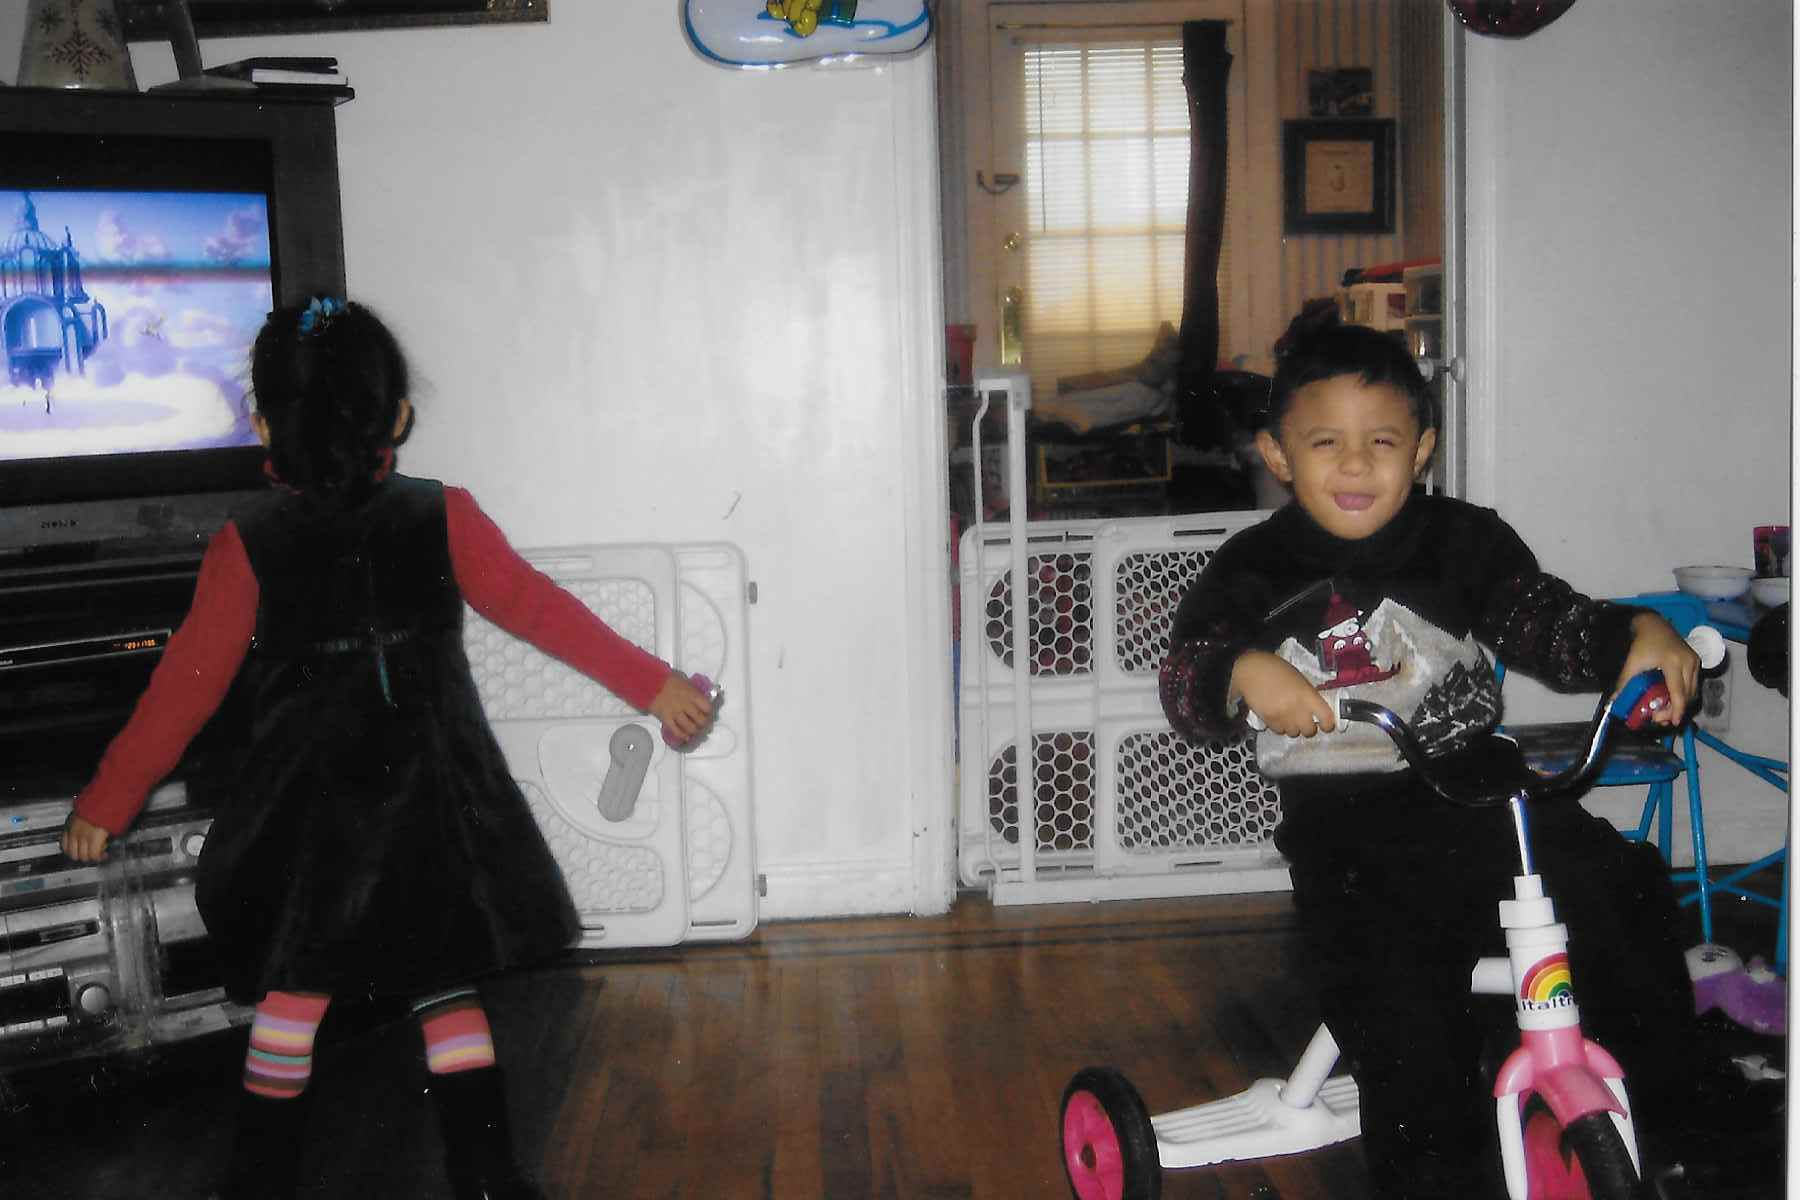 A little girl stands in front of a TV so her back is facing the camera. Her twin brother is looking at the camera with a scrunched face while riding a tricyle inside their family's living room.